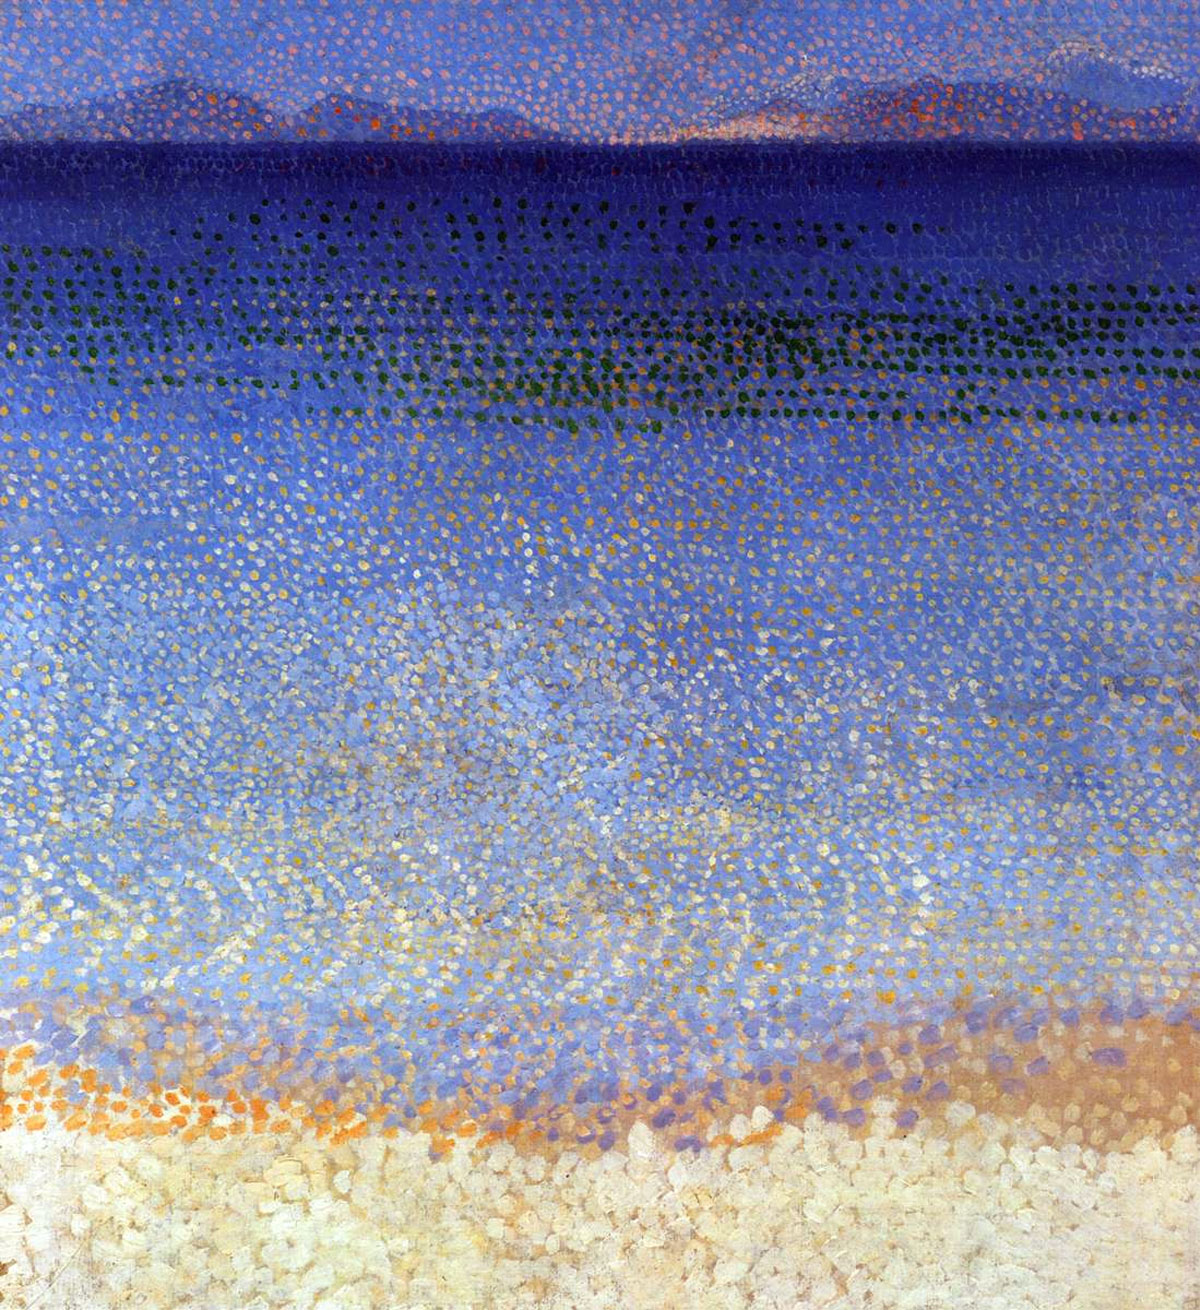 Isole d'oro (Golden isles, 1892) • Quadro celebre di Henri-Edmond Cross